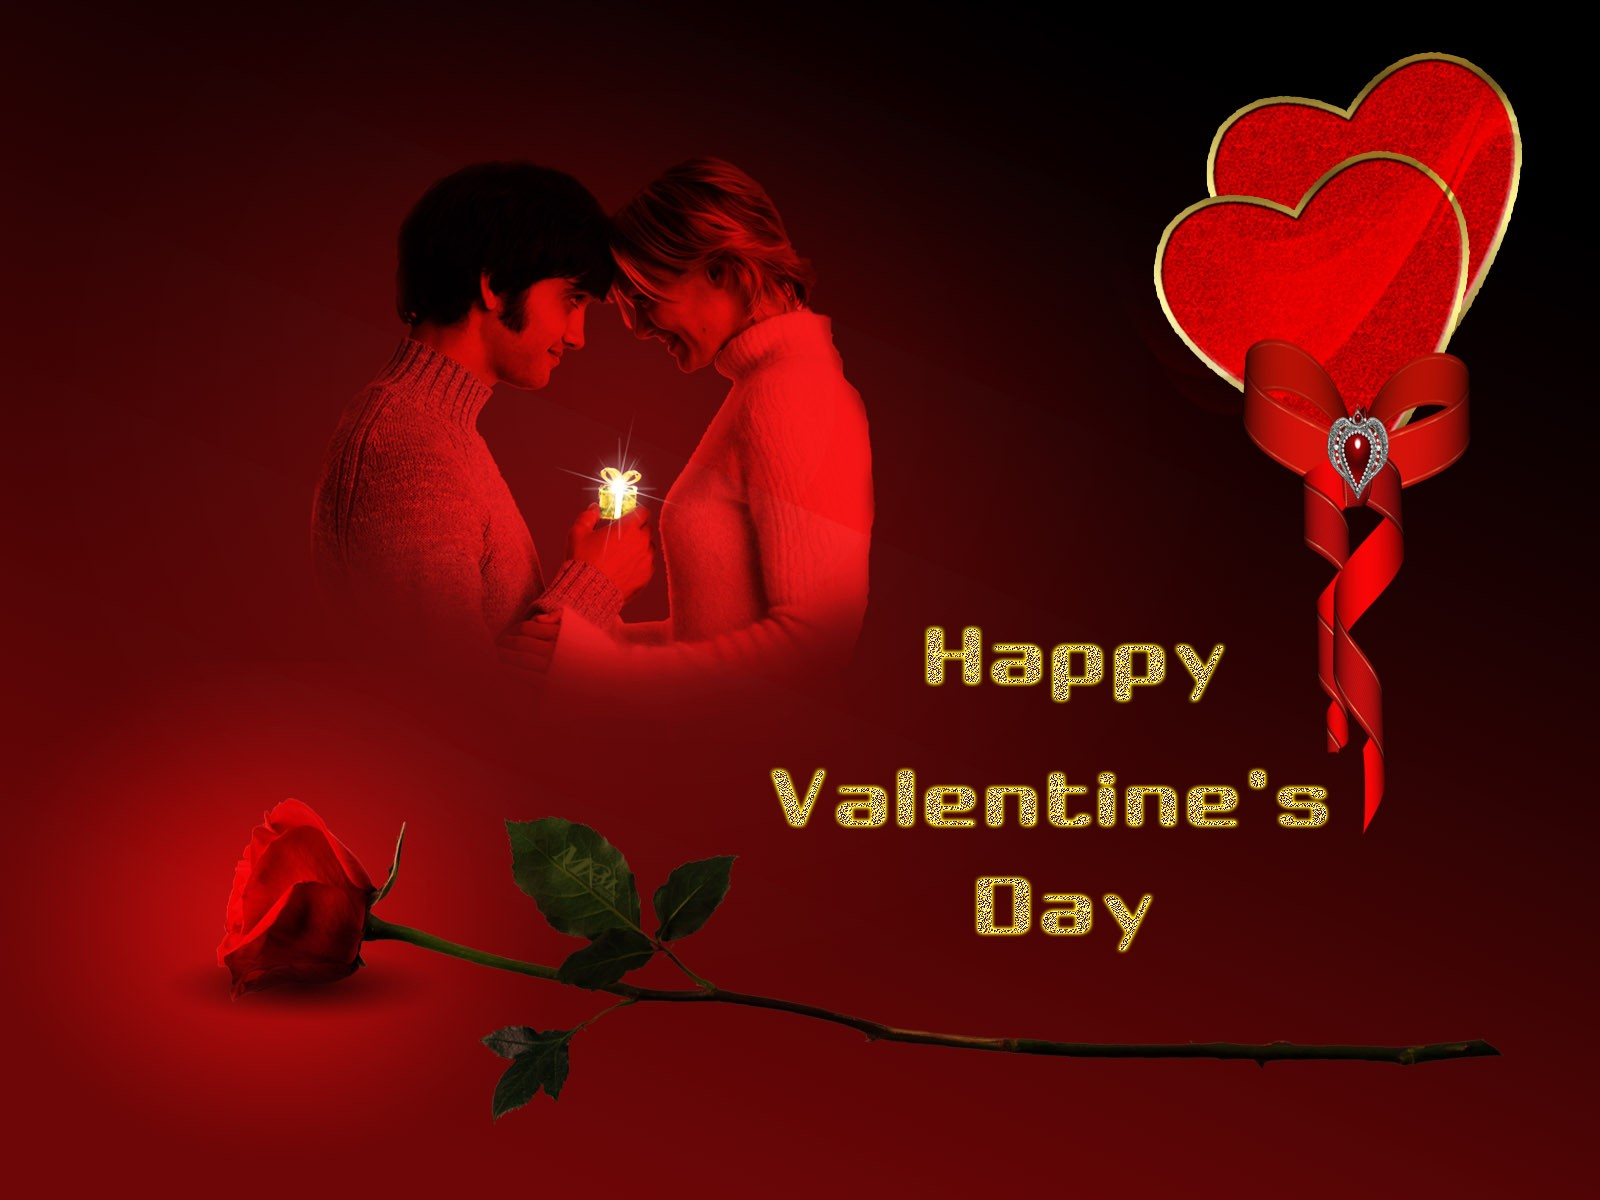 Couple-in-Love-Happy-Valentines-Day-Wallpaper